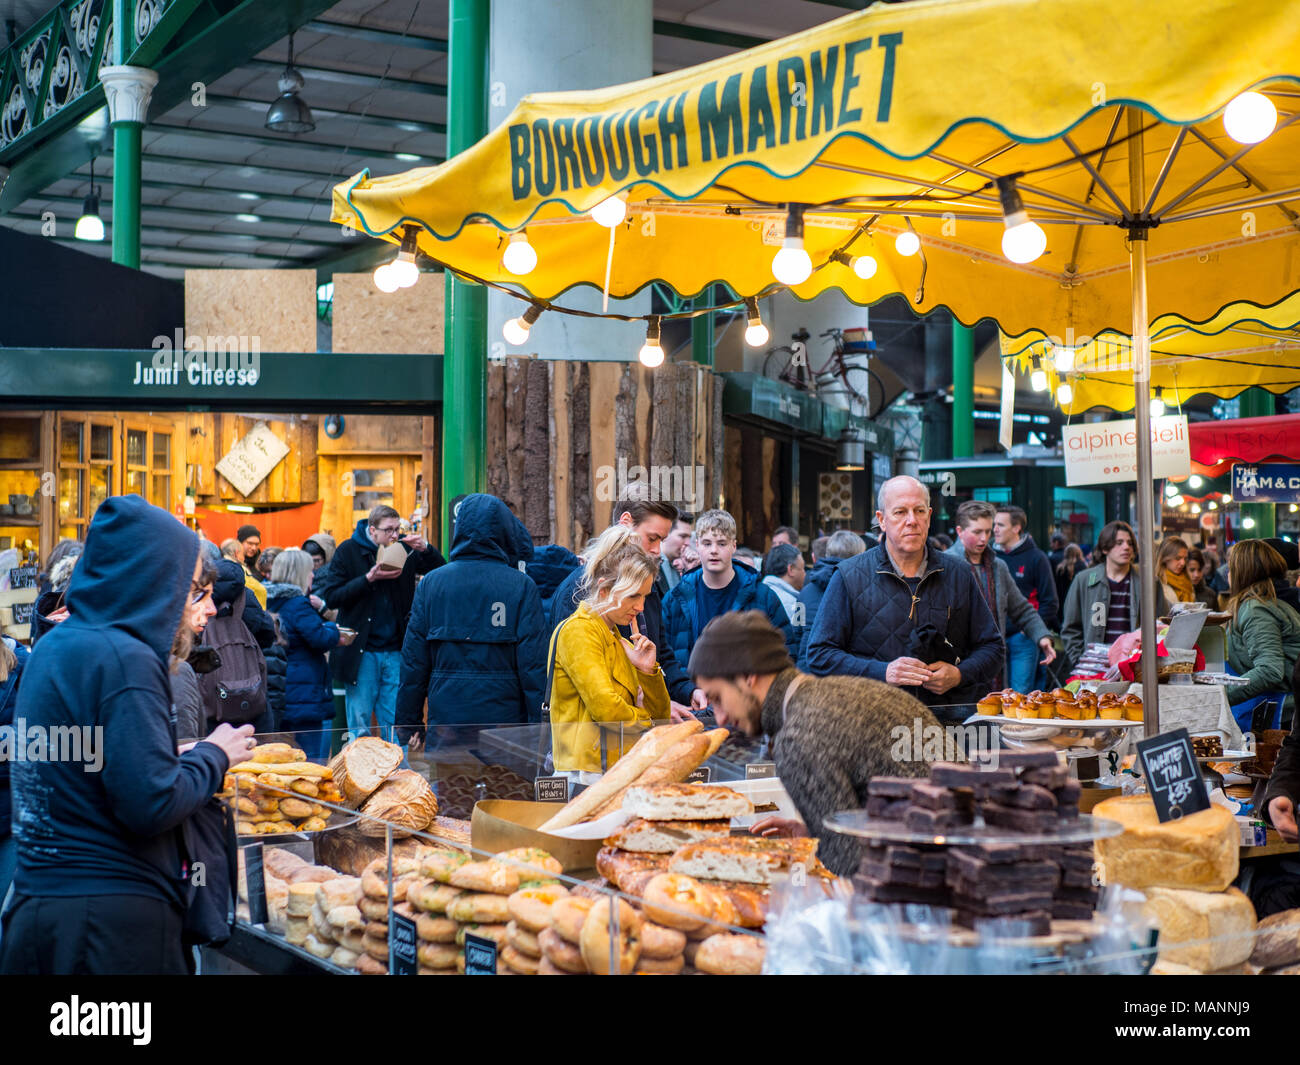 Borough Market selling speciality foods in central London, one of London's largest food markets, located at the southern end of London Bridge. - Stock Image